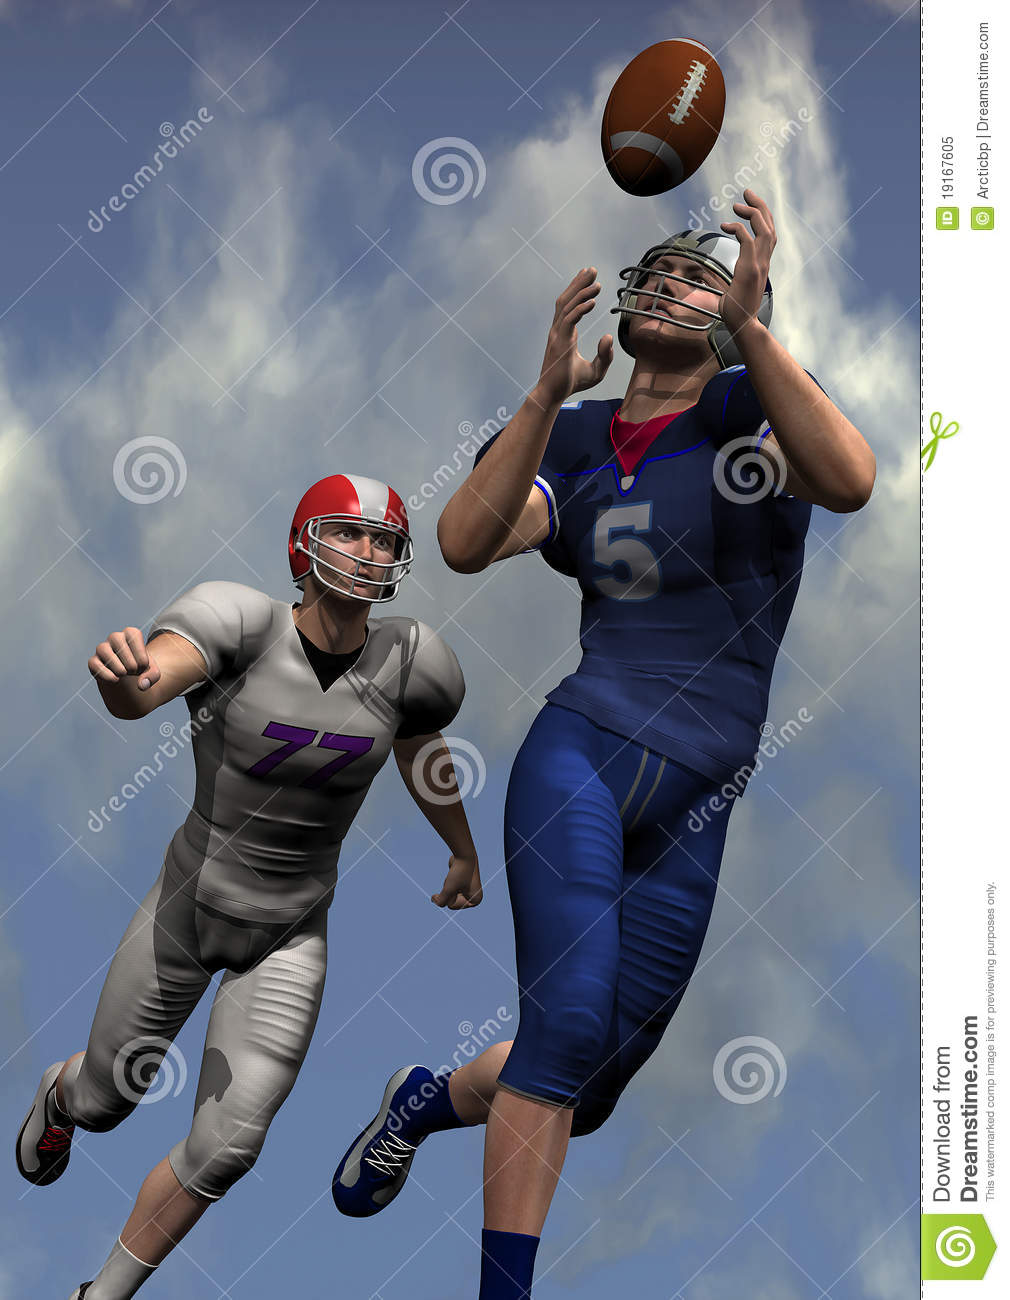 American Football Players Royalty Free Stock Photo - Image: 19167605